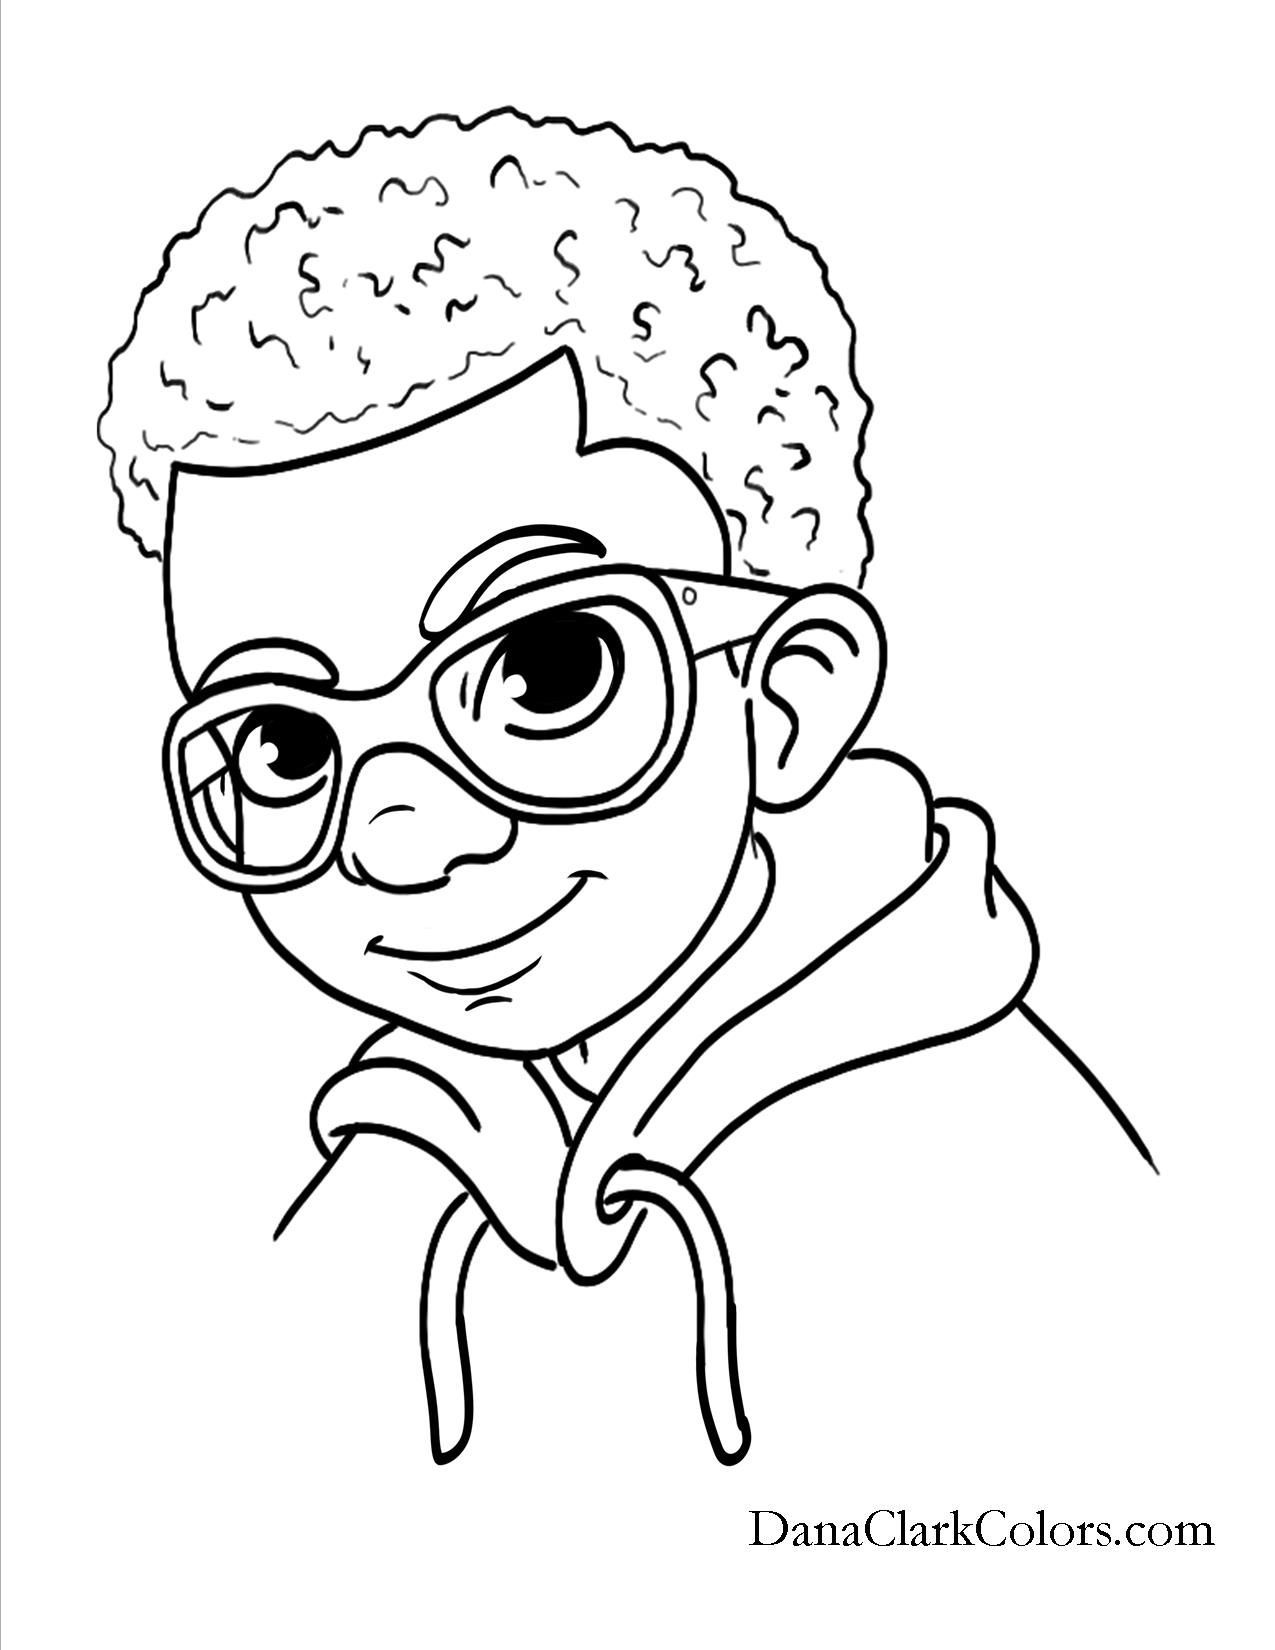 Fresh Coloring Pages For Boys For You